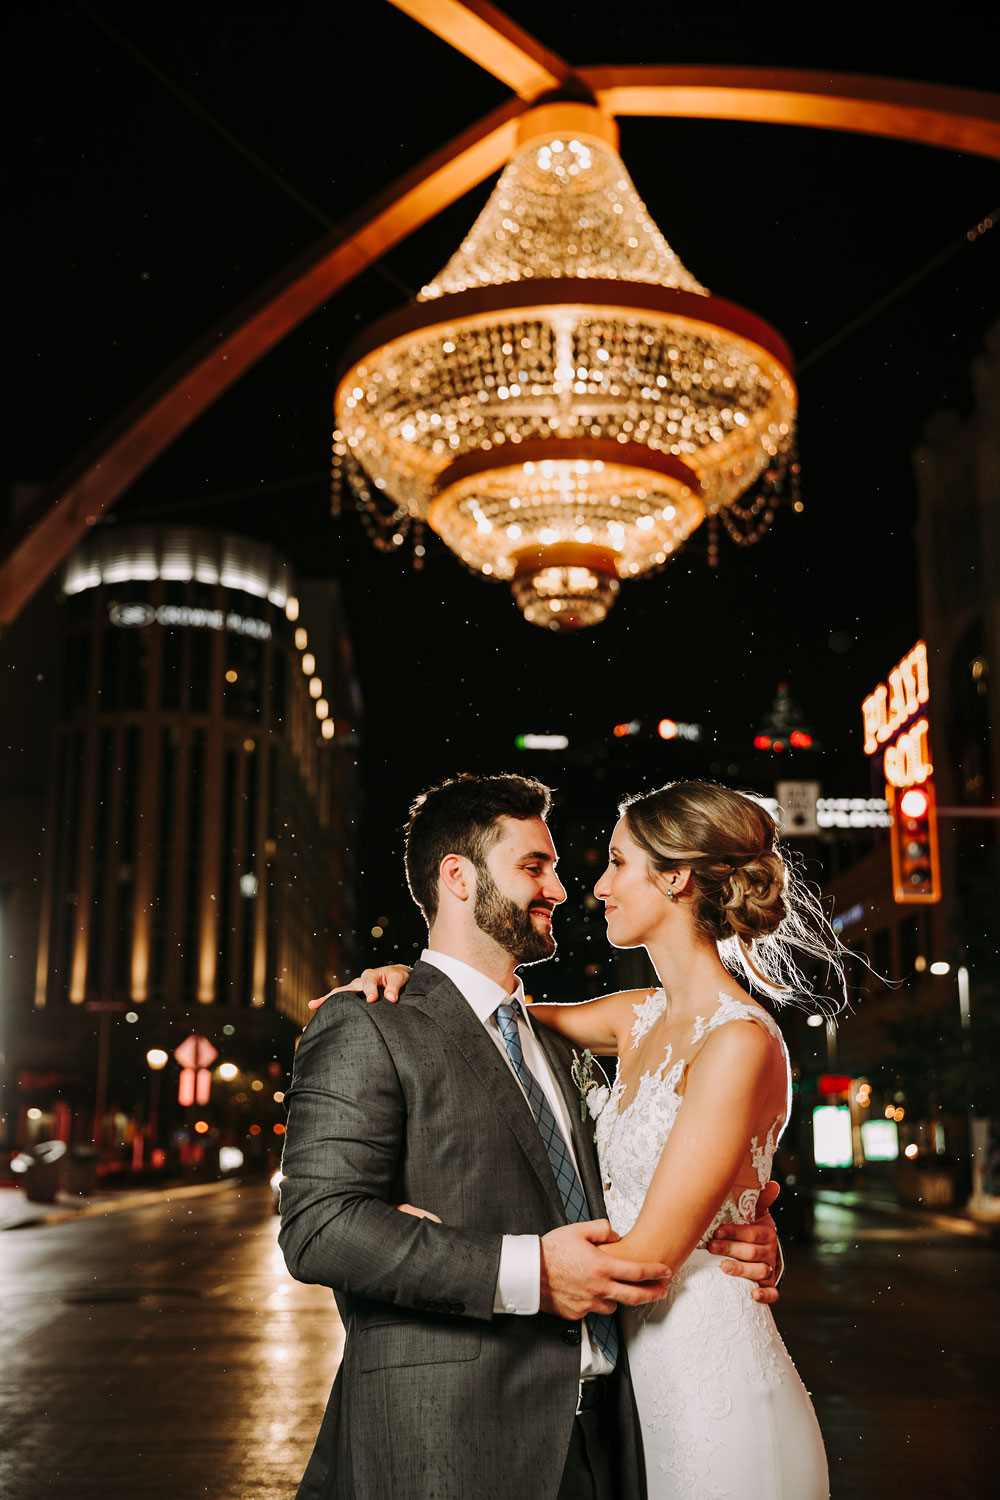 cleveland-wedding-photographers-downtown-playhouse-square-crowne-plaza-hotel-201.jpg